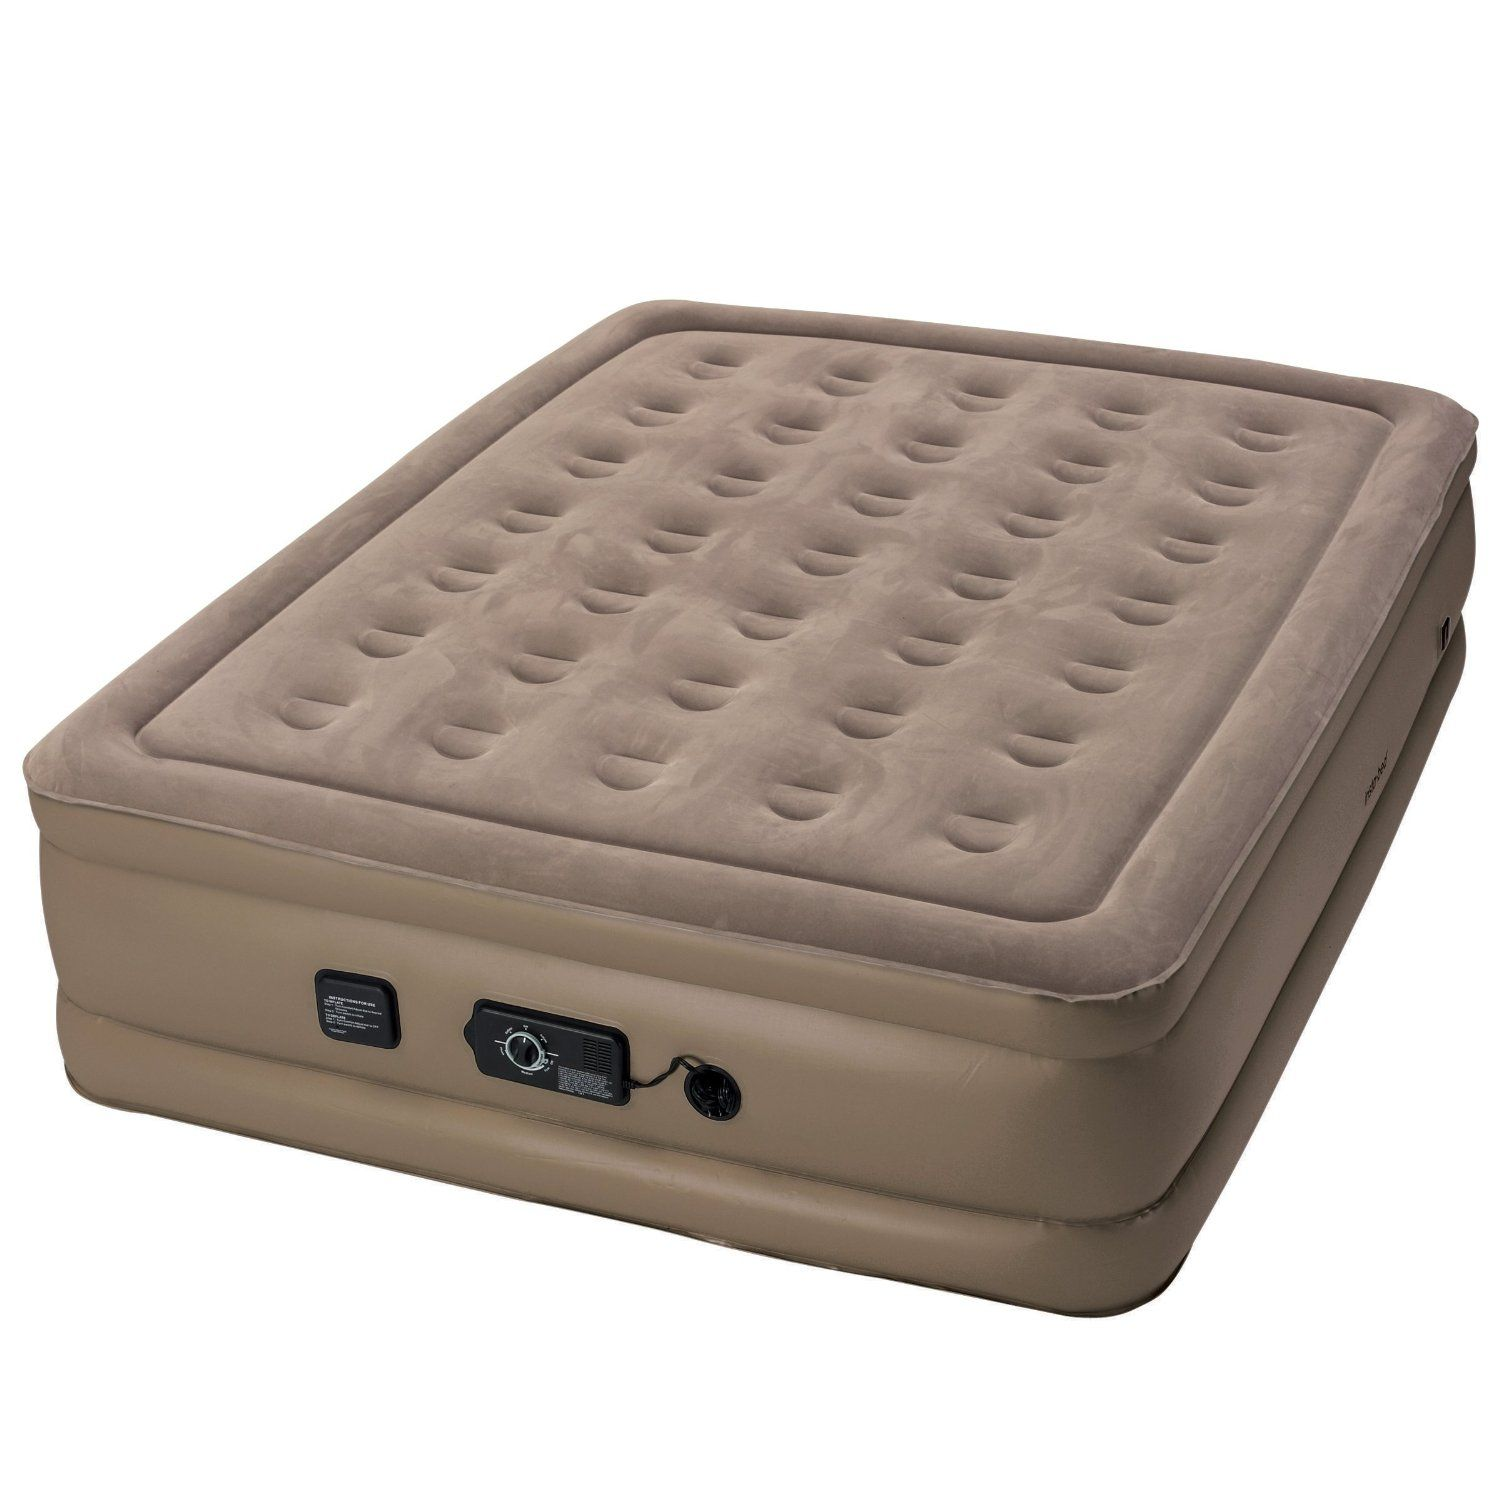 Insta Bed Raised Air Mattress With Never Flat Pump Learn More By